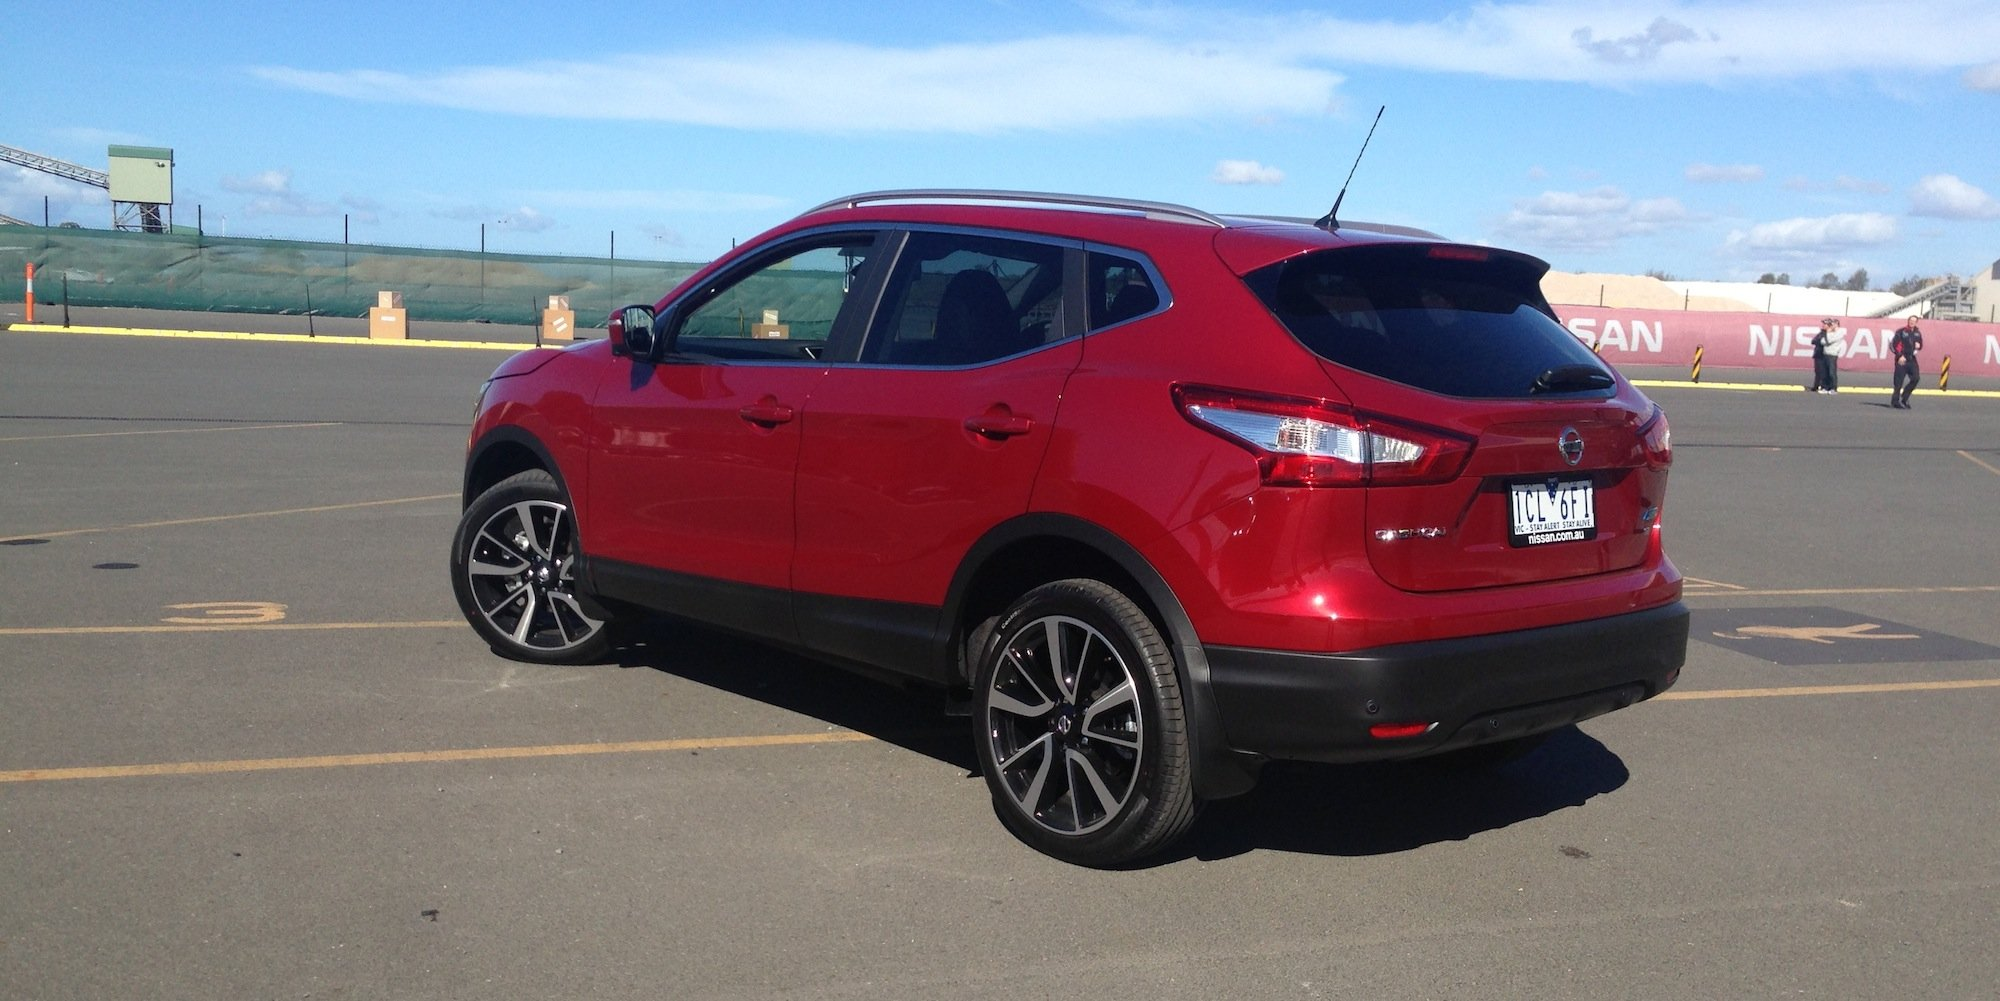 2014 nissan qashqai review interior price specs autos post